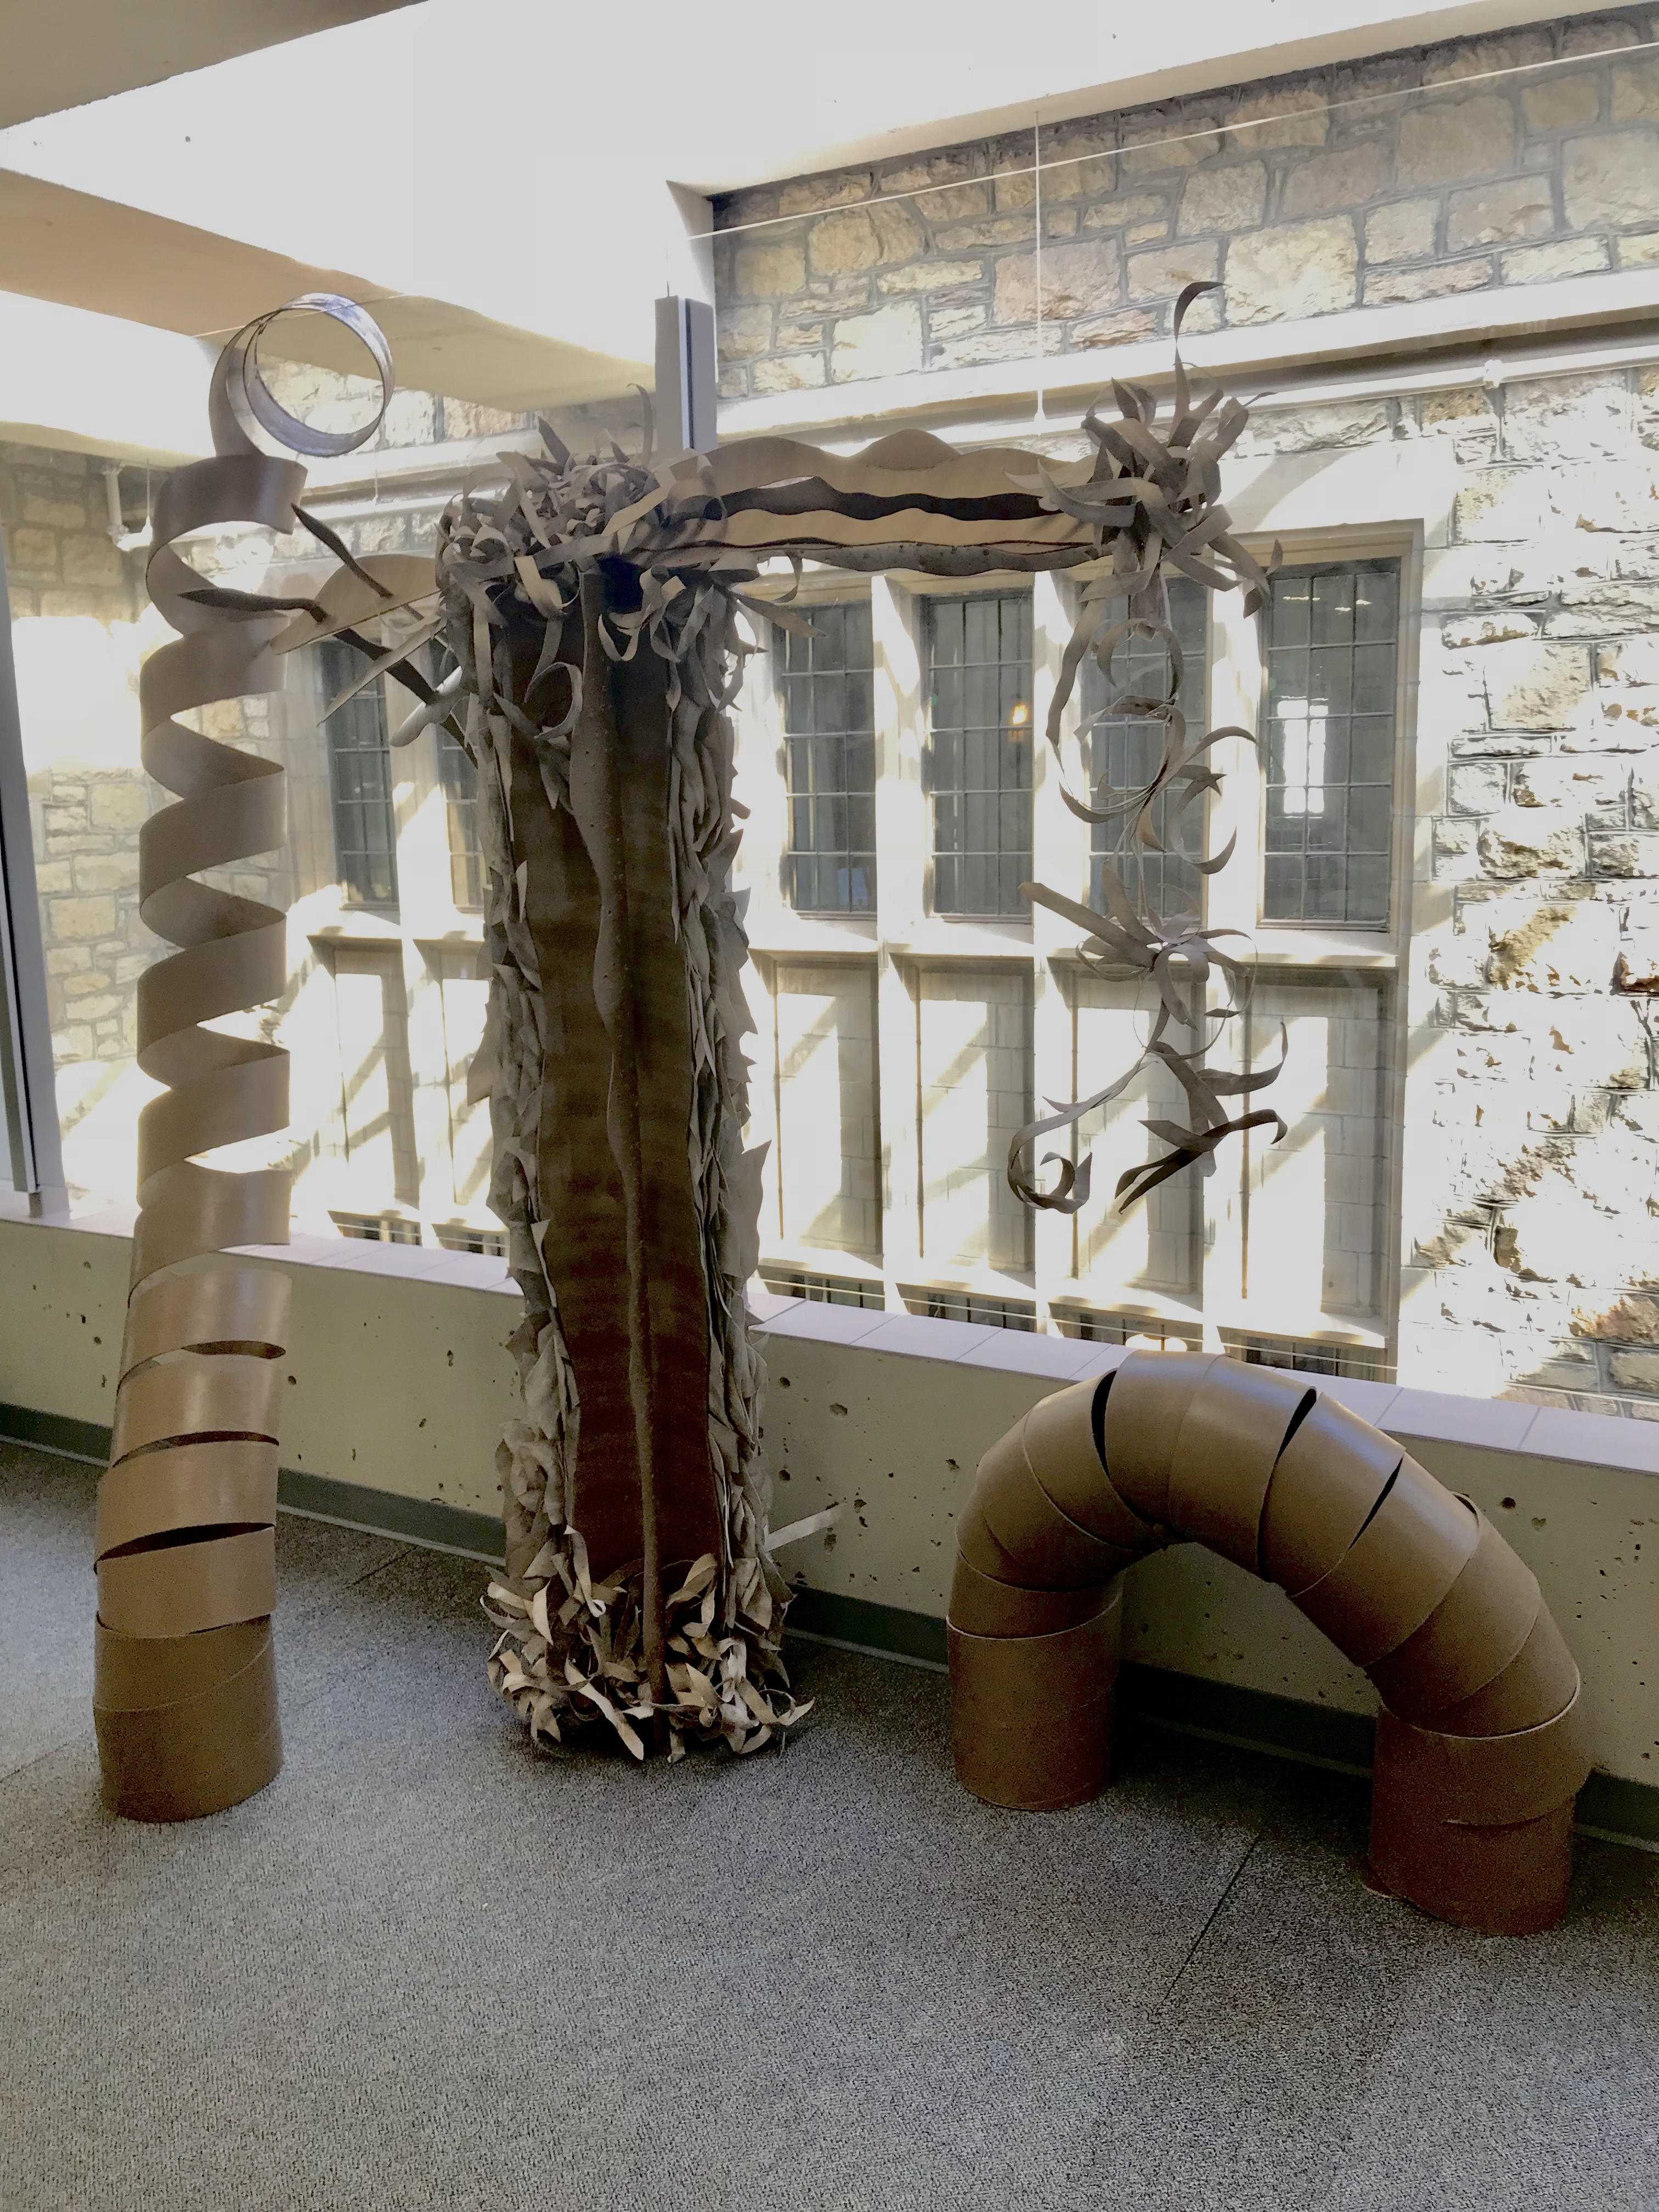 An sculpture created from discarded paper tubes for ARTCycled 2018 by Hailey Jones